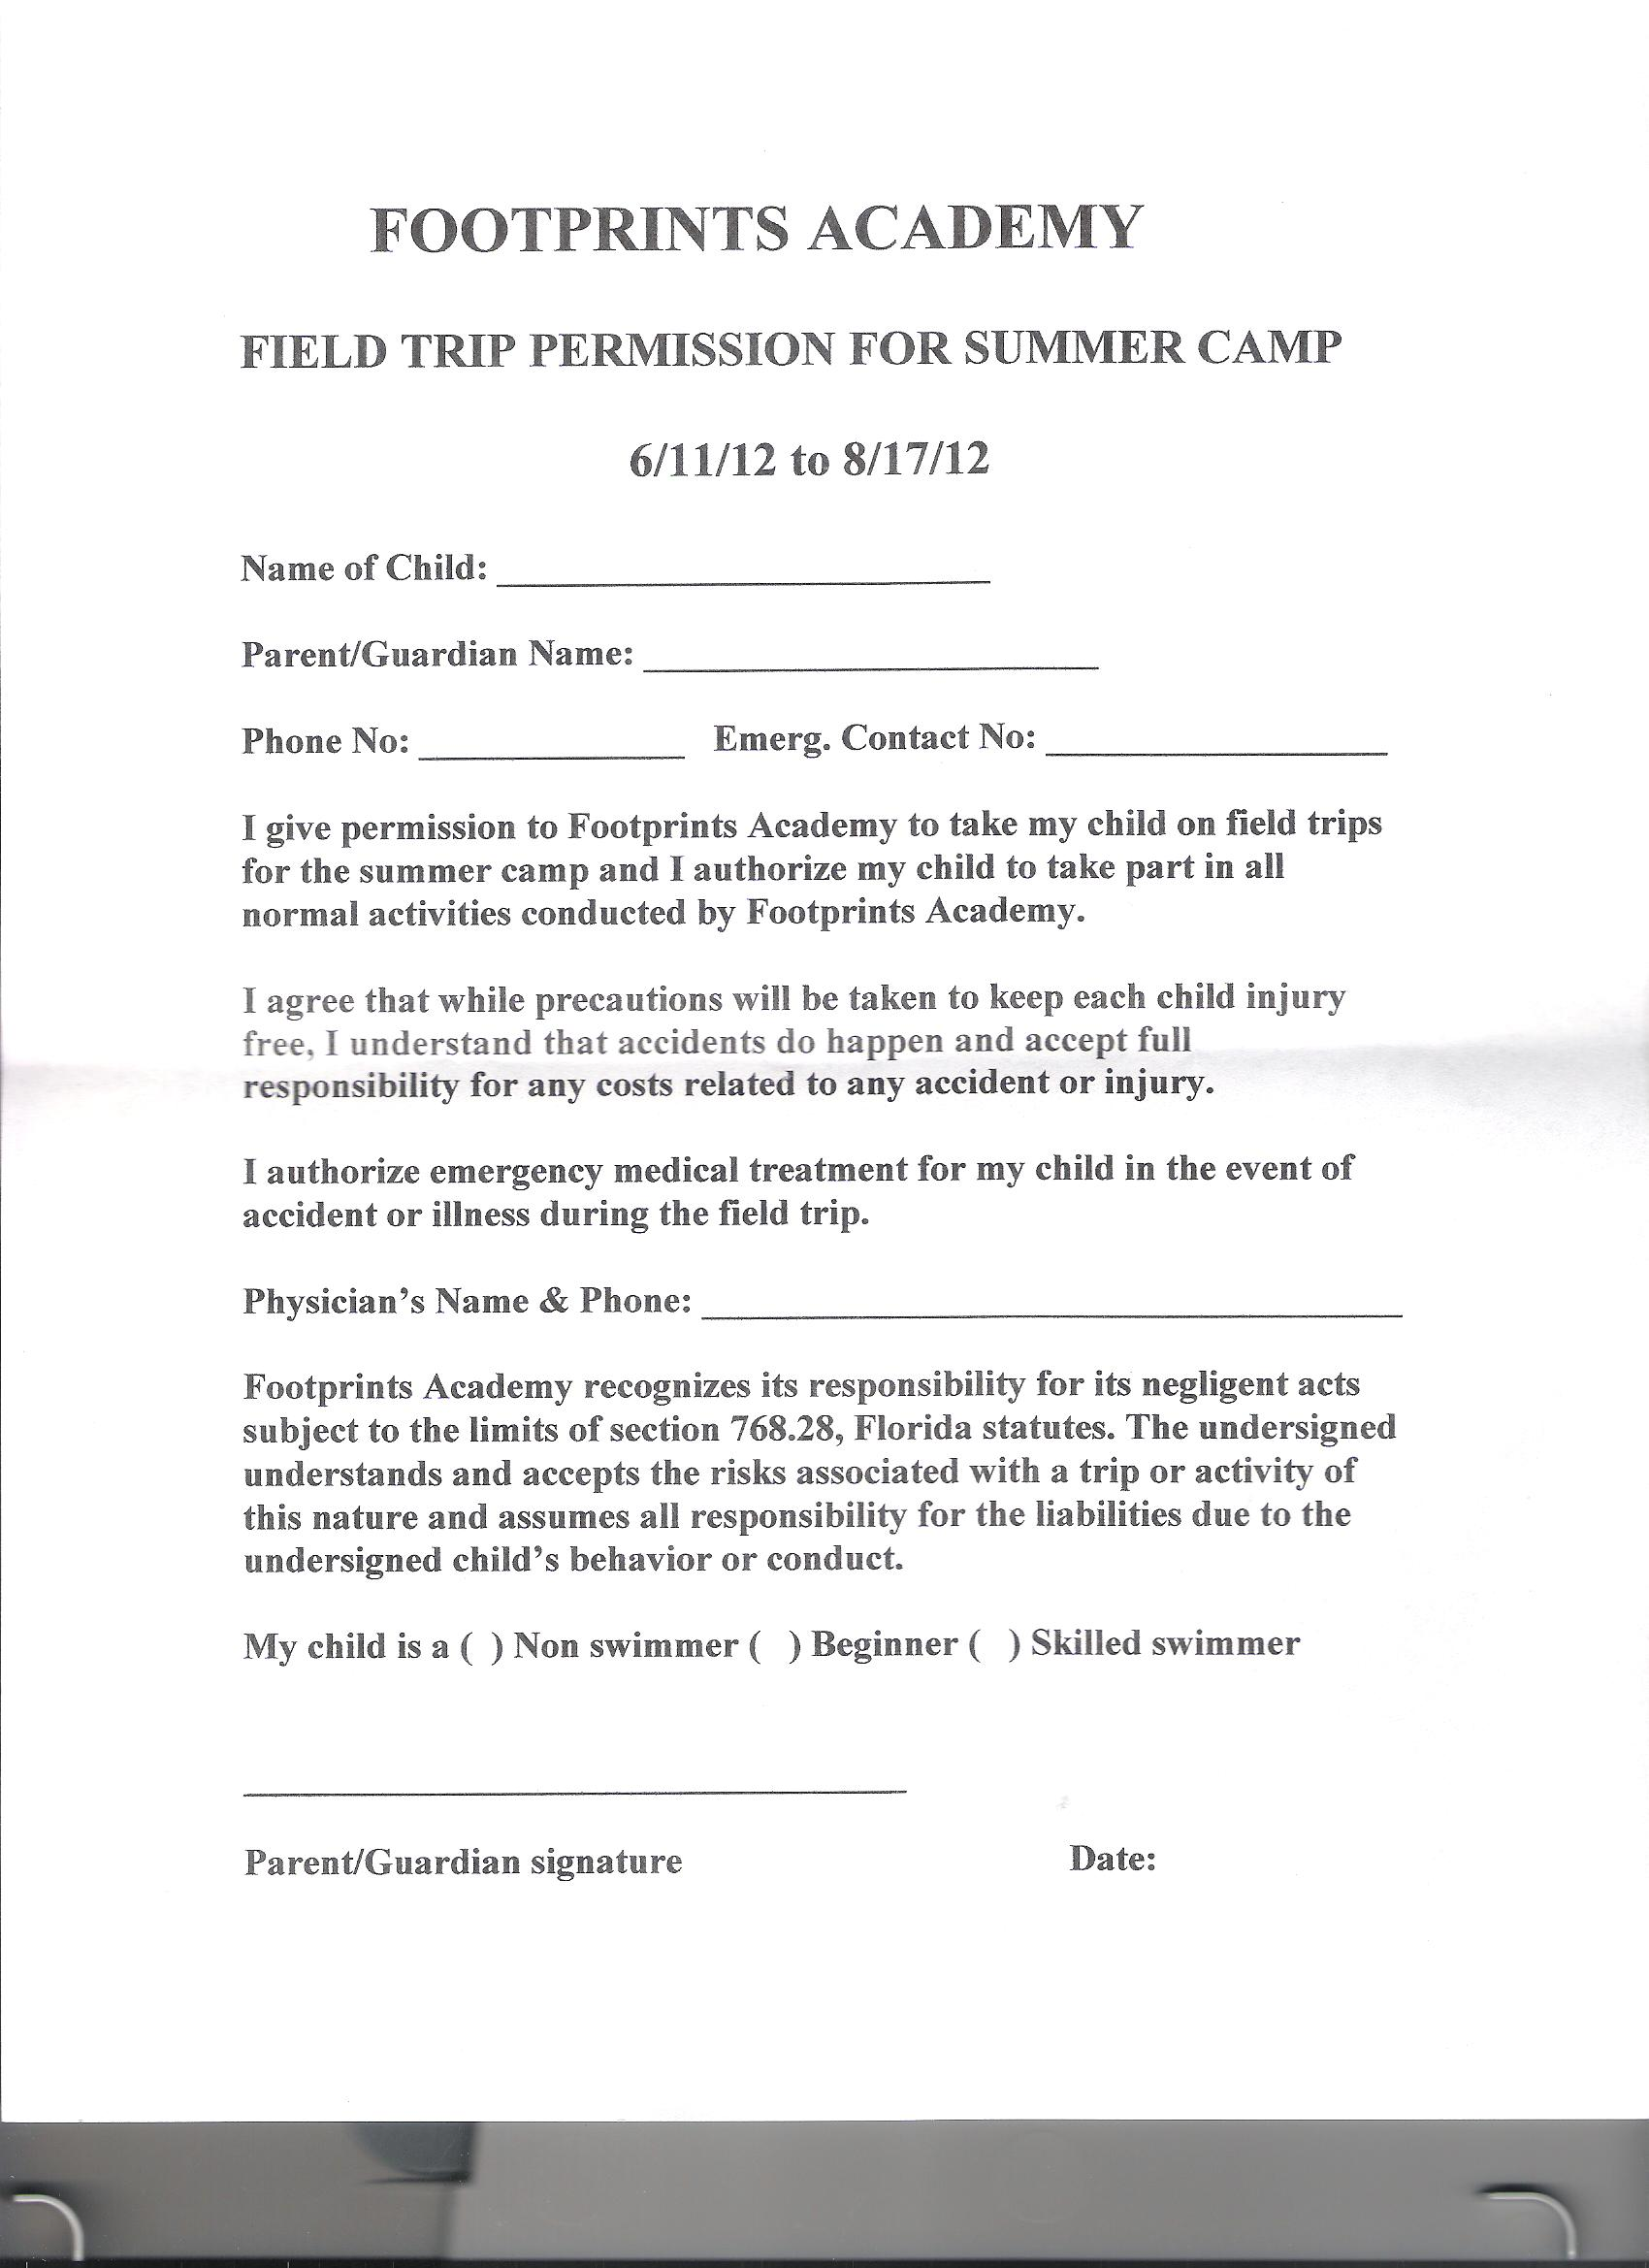 Field trip permission slip form field trip permission slip form